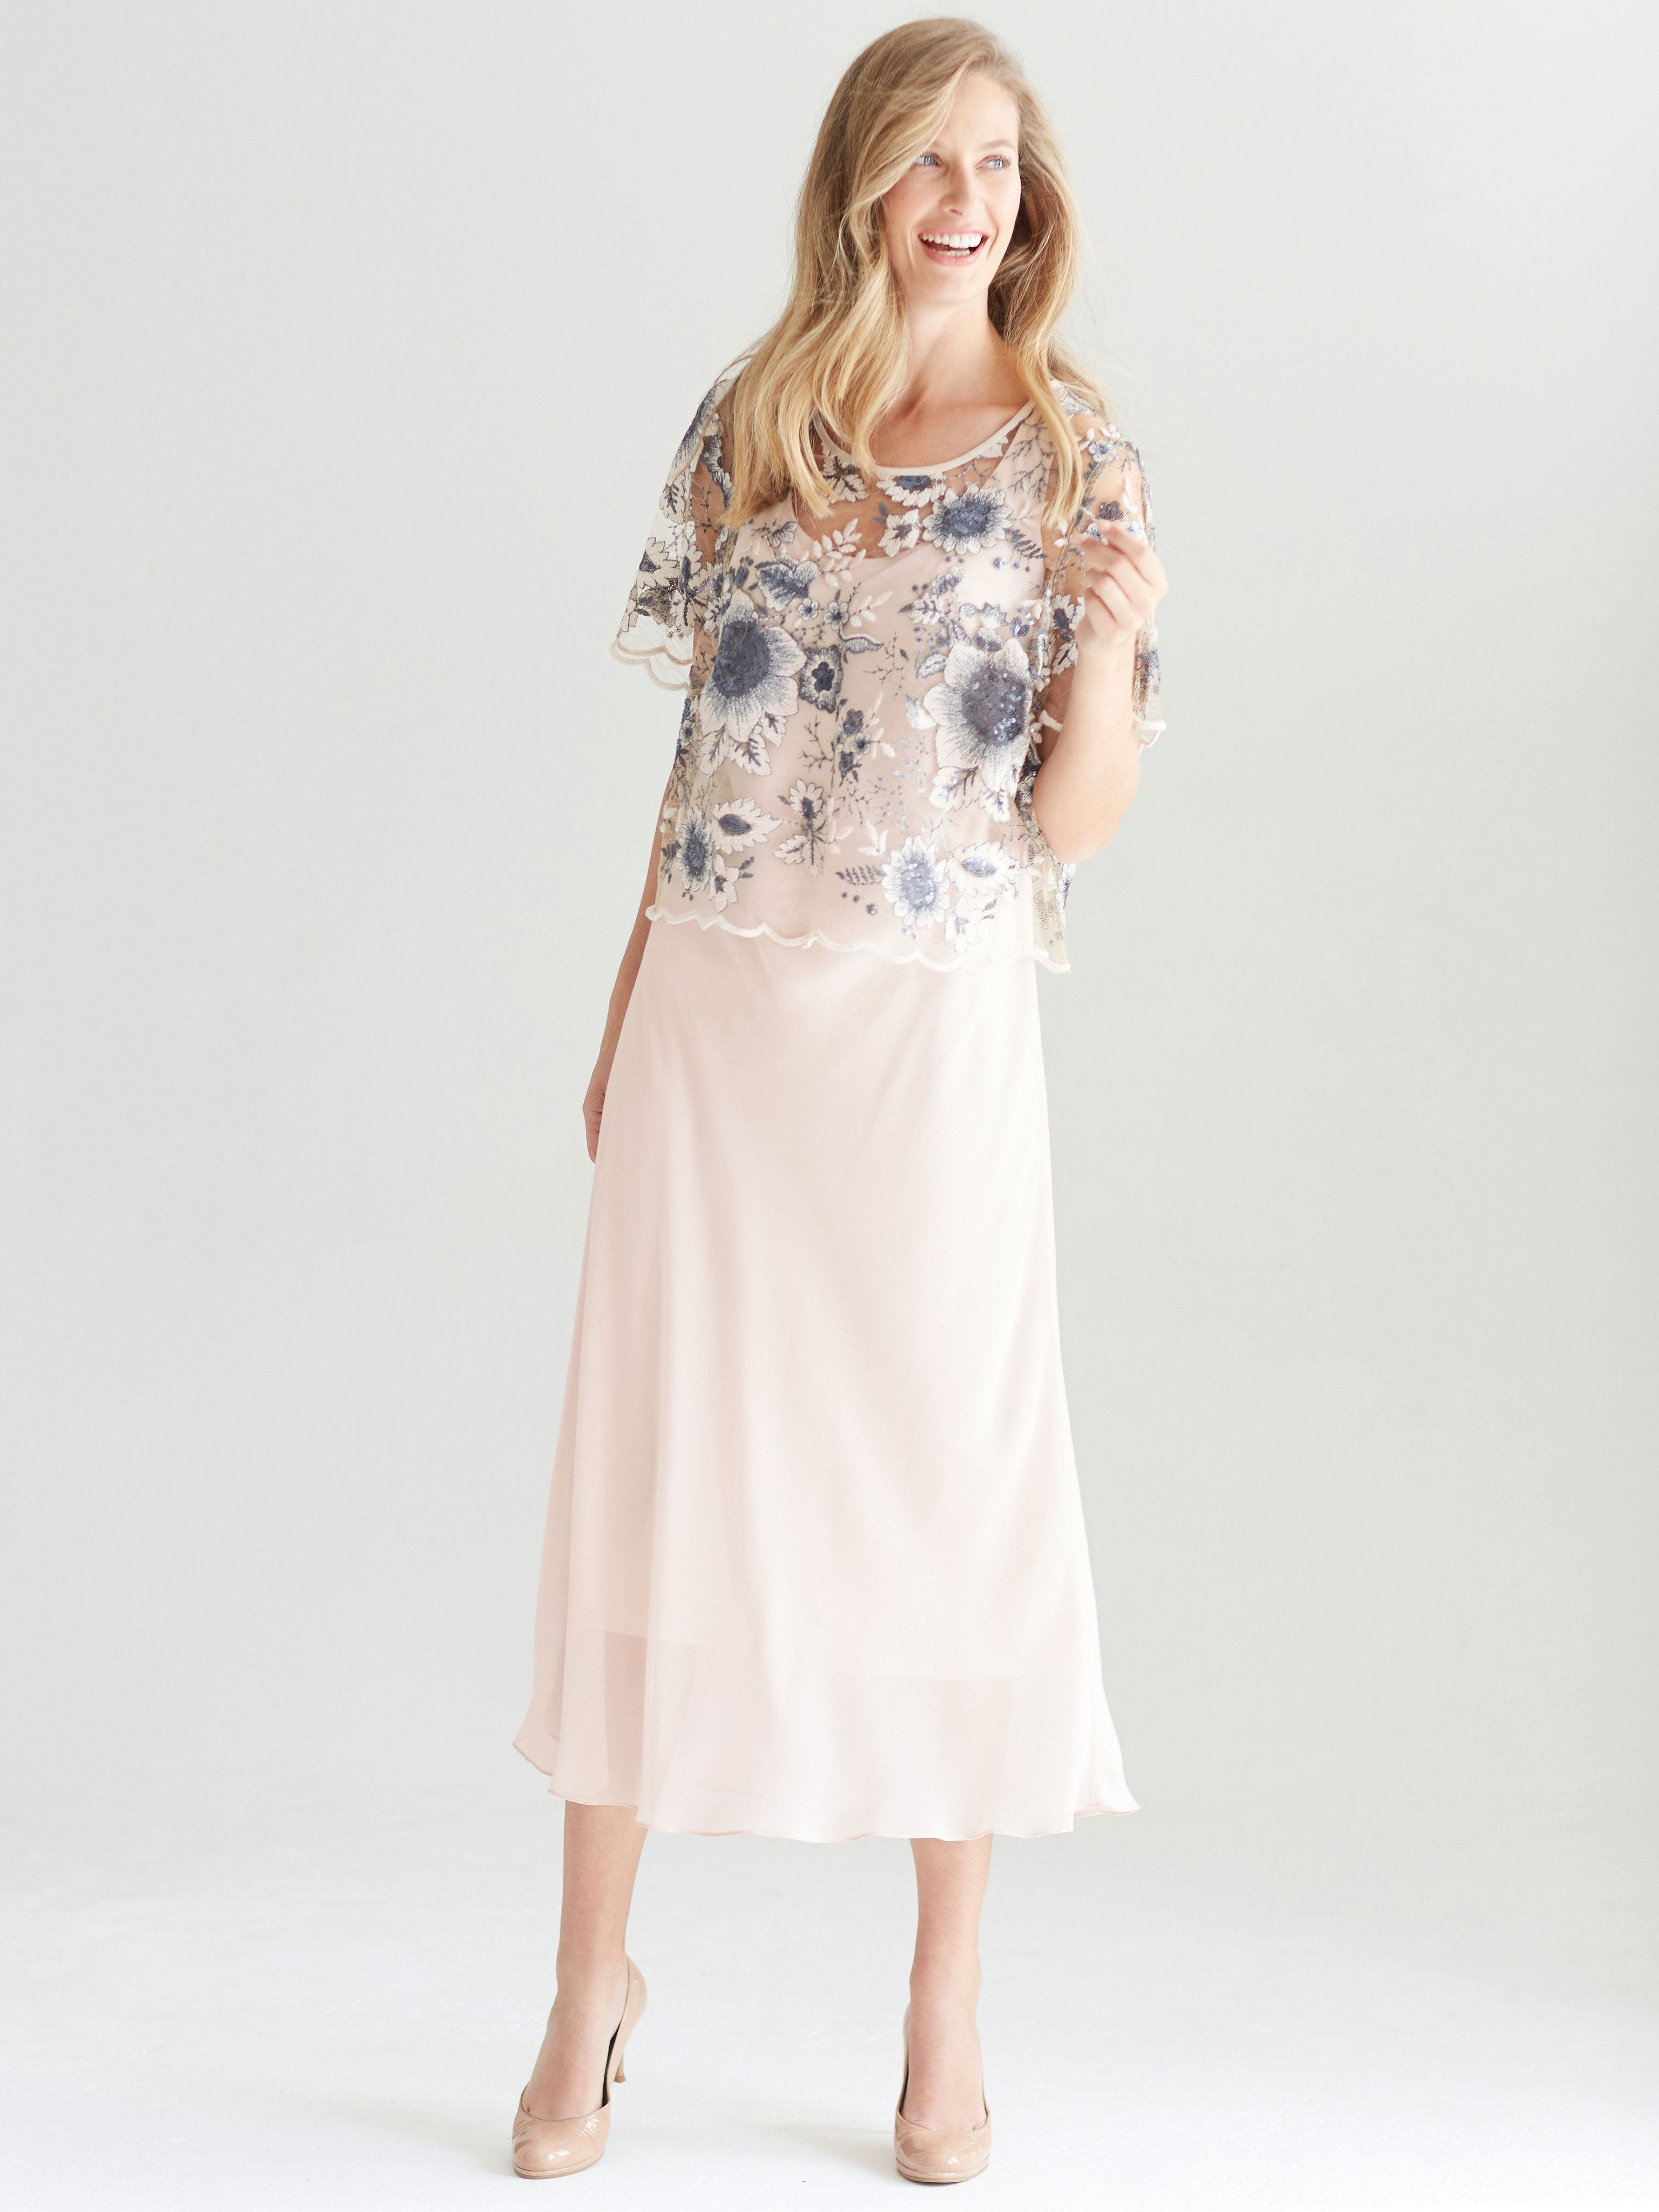 Blush Contrast Sequin Embroidered overtop with chiffon Dress